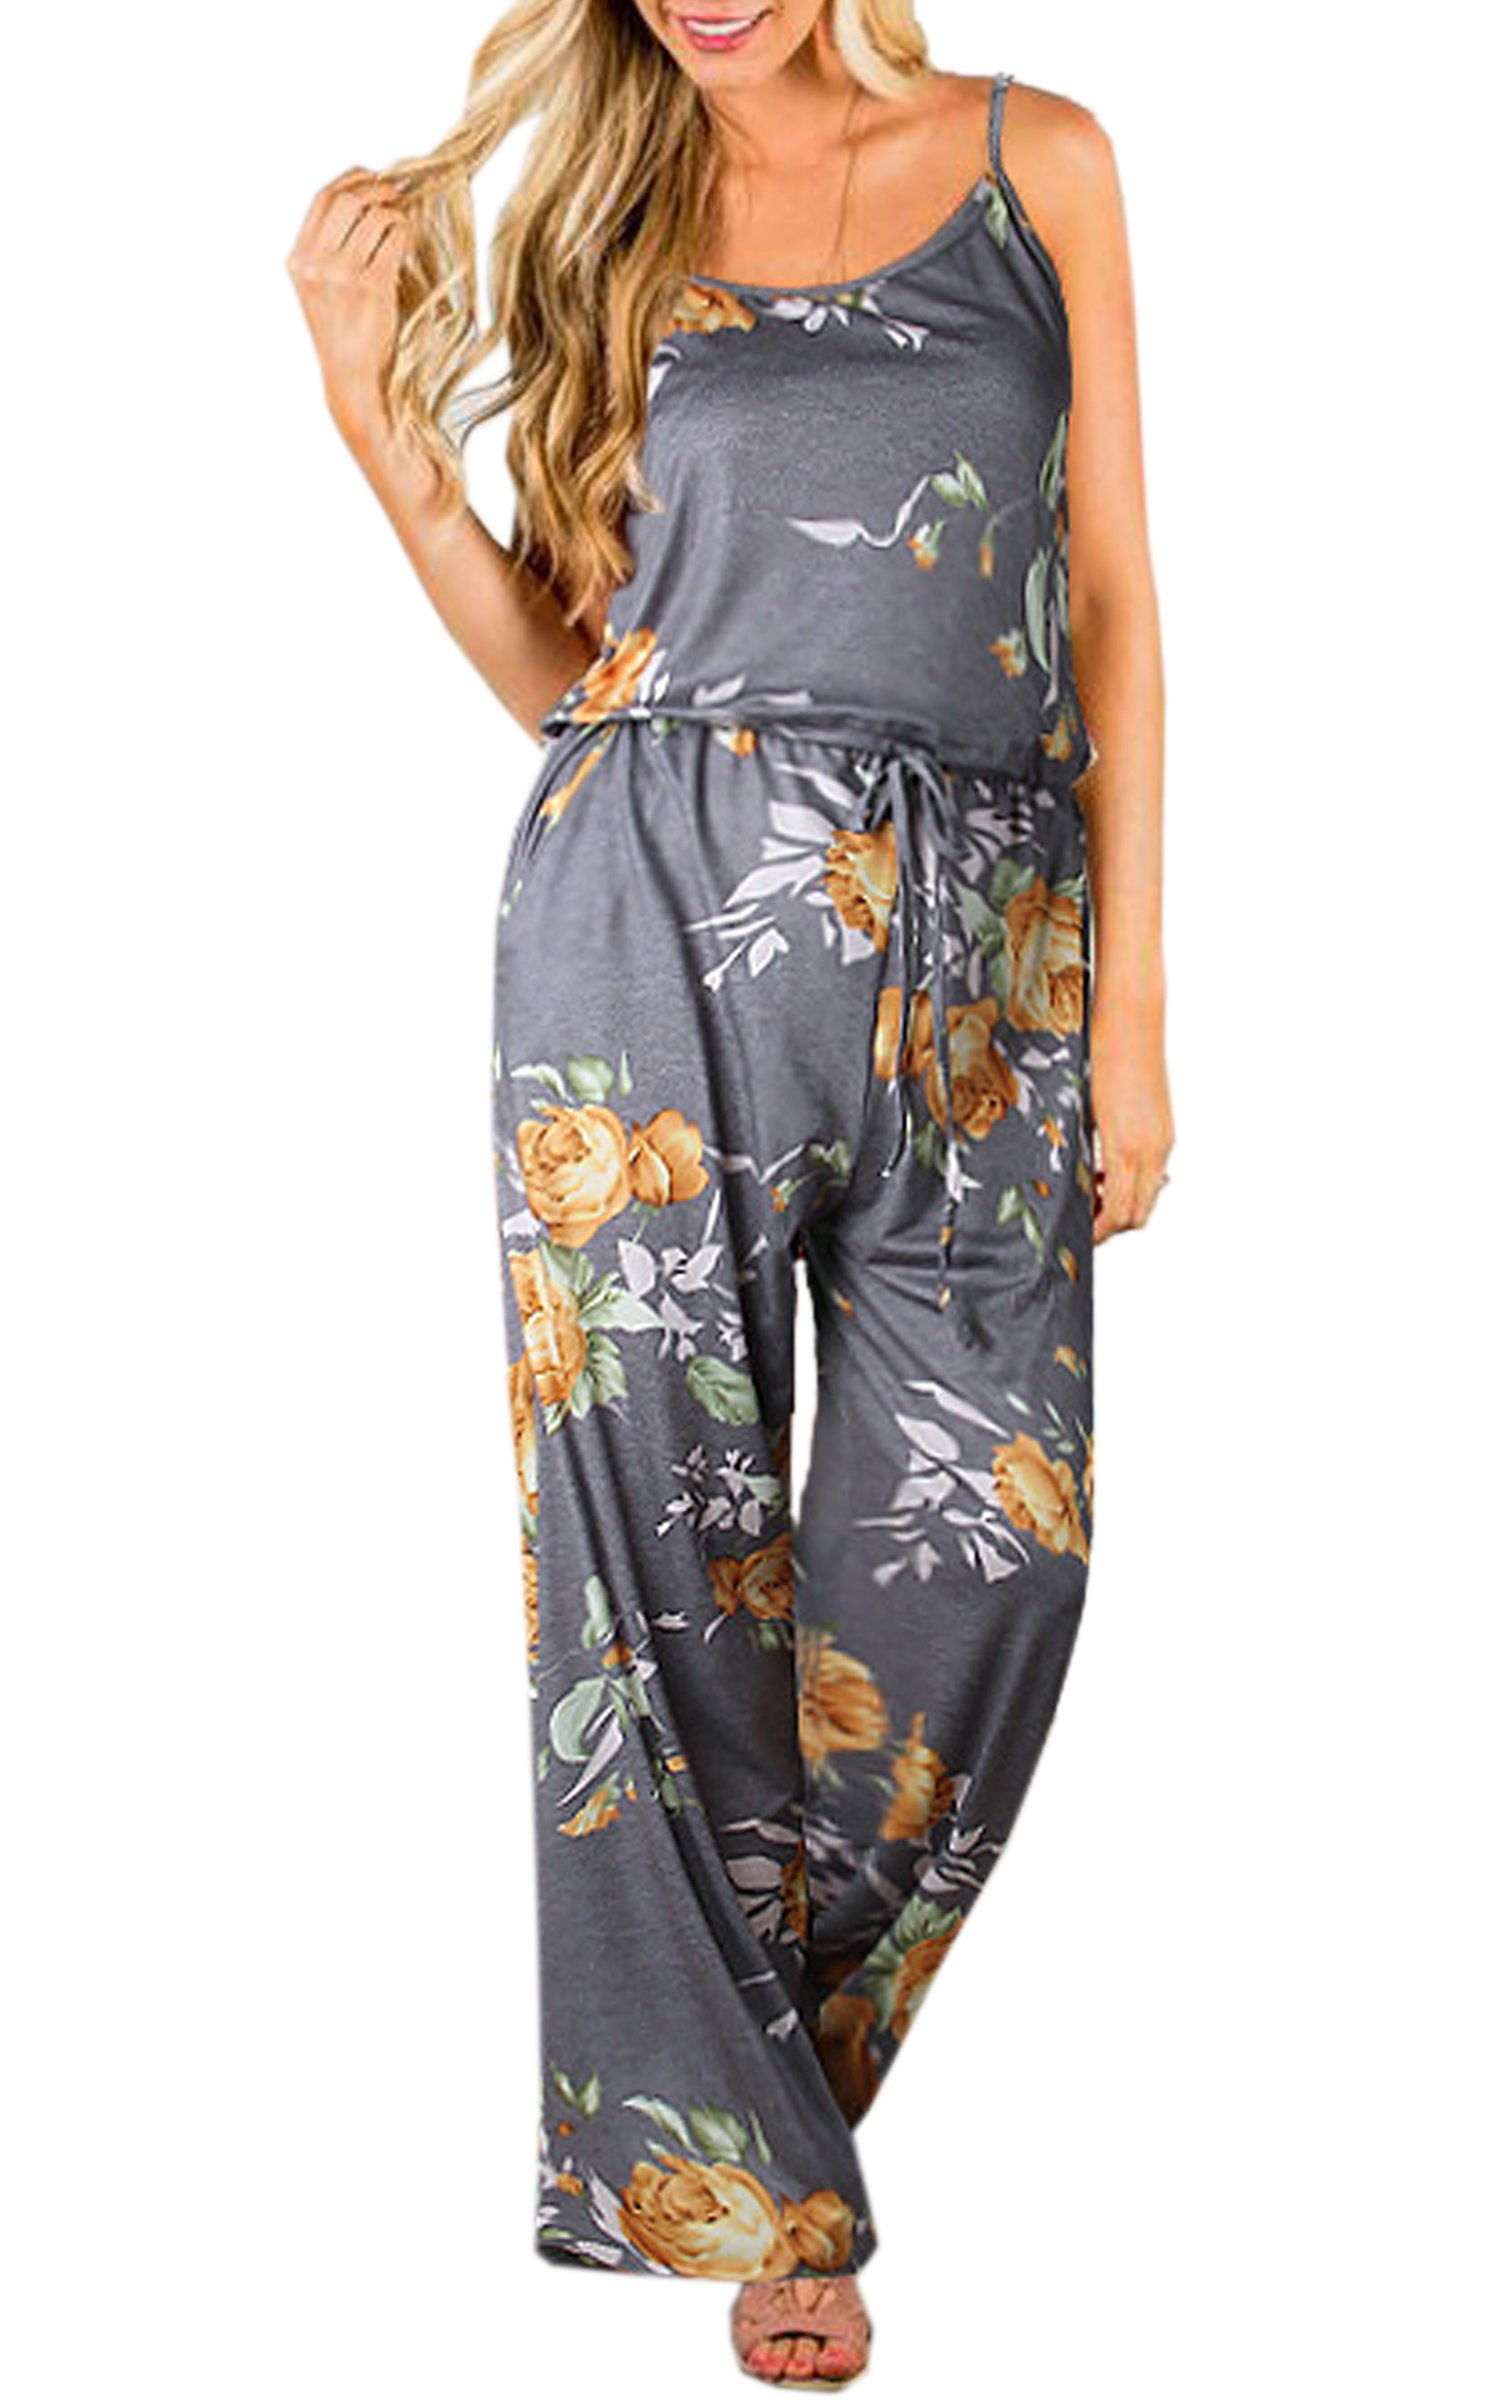 ECOWISH Womens Jumpsuits Summer Floral Printed Spaghetti Strap Sleeveless Casual Jumpsuit Rompers Yellow XL